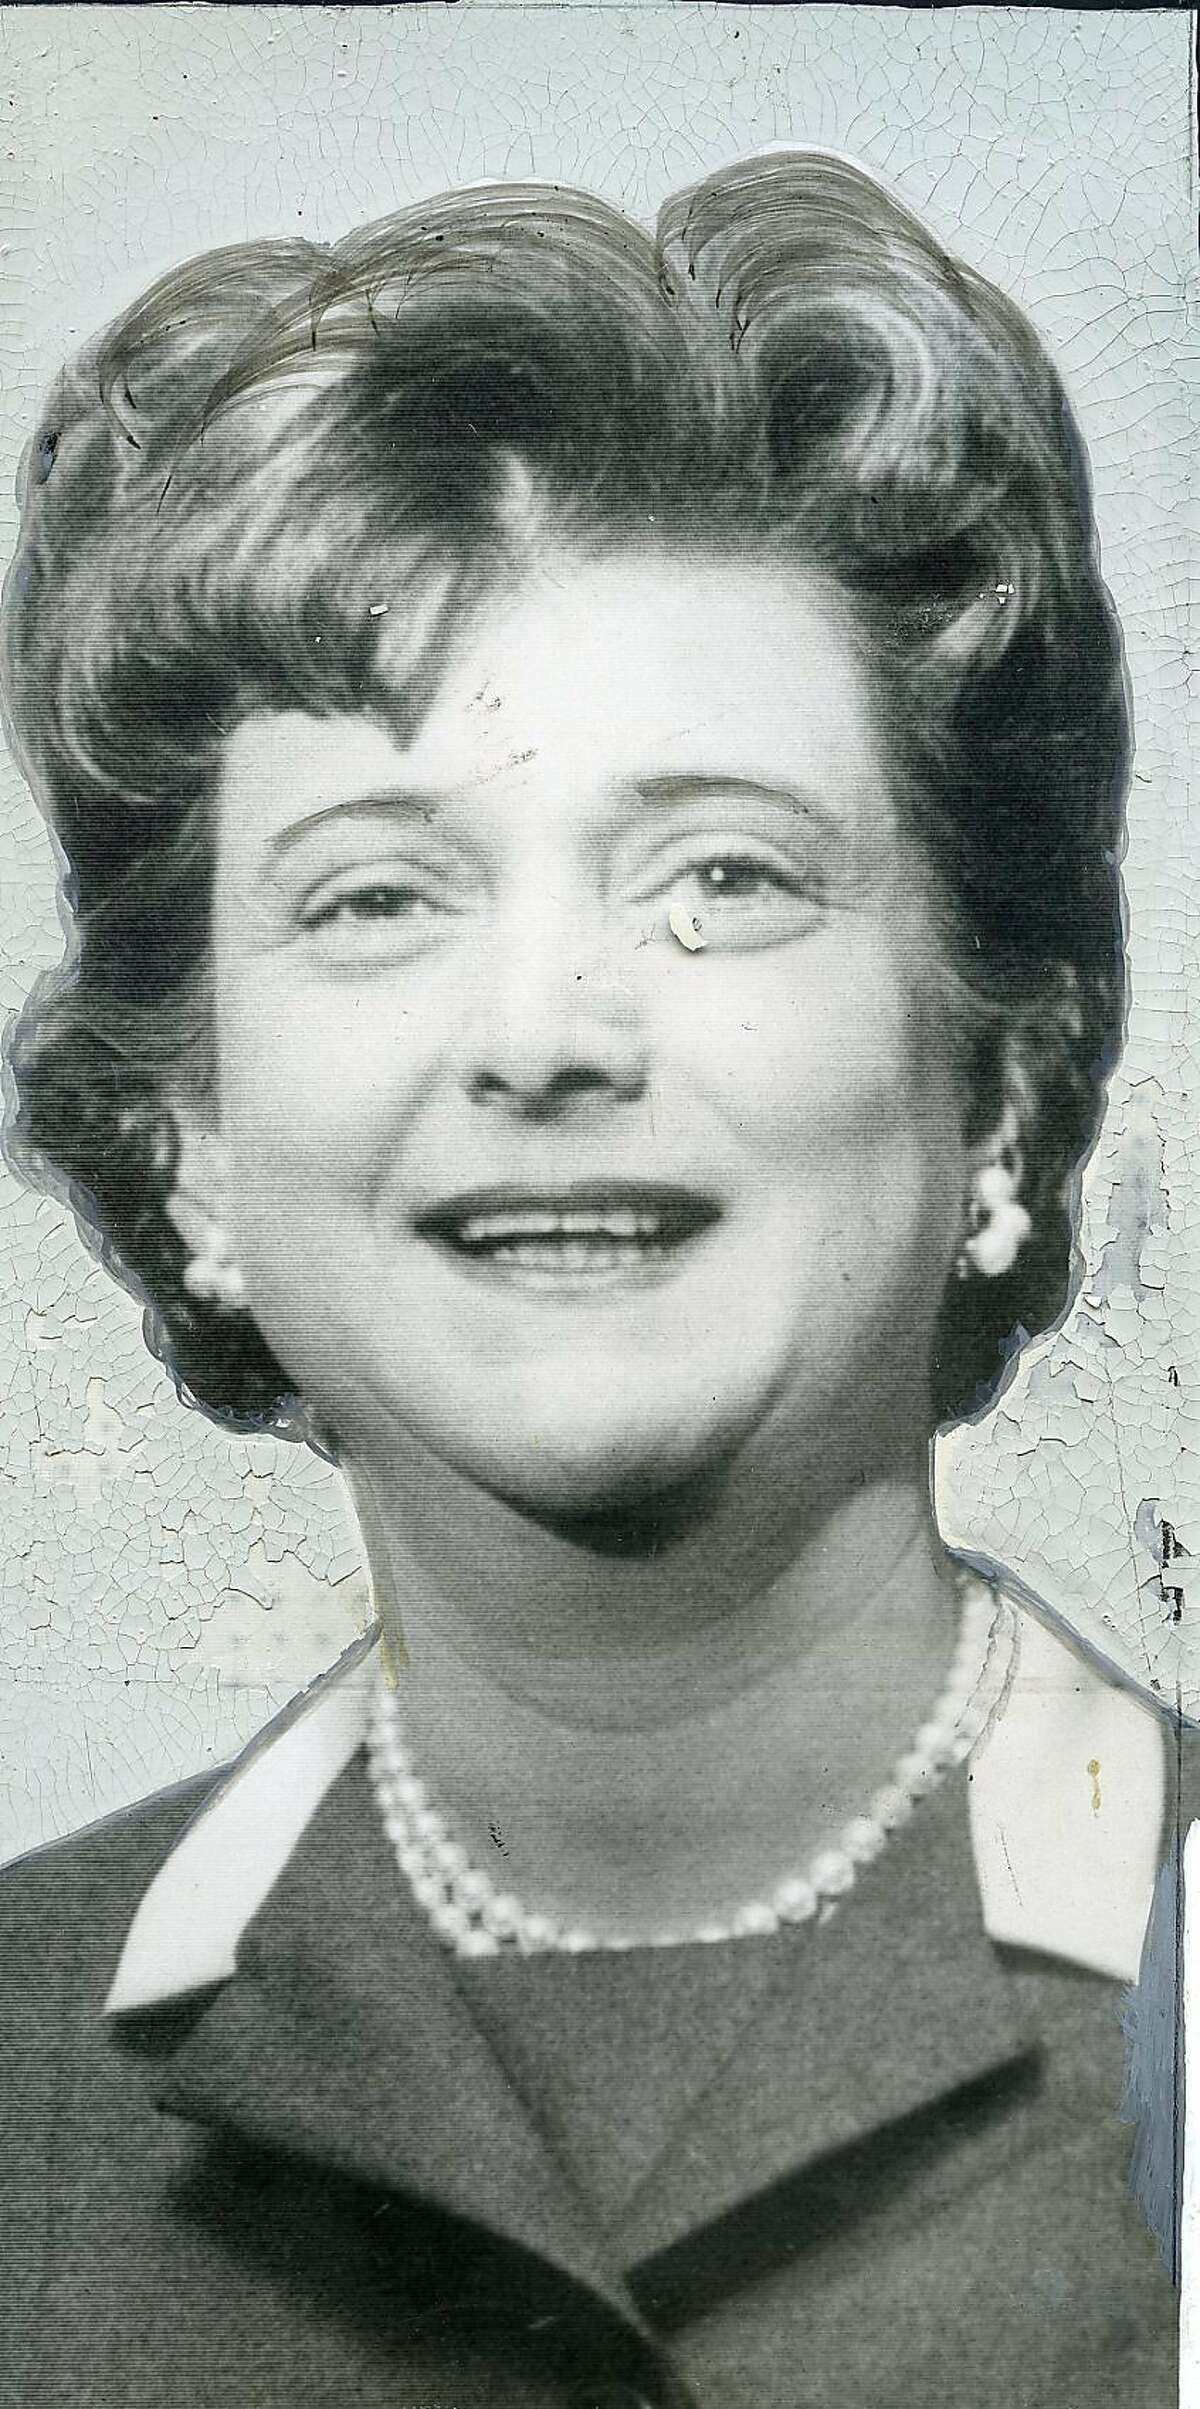 Ann Eliaser was active in many political organizations, seen here when she was Ann Alanson, and had been elected National Committeewoman by the California State Democratic Executive Committee March 6, 1965 United Press International photo ran 3/14/1965, p. 5 This World